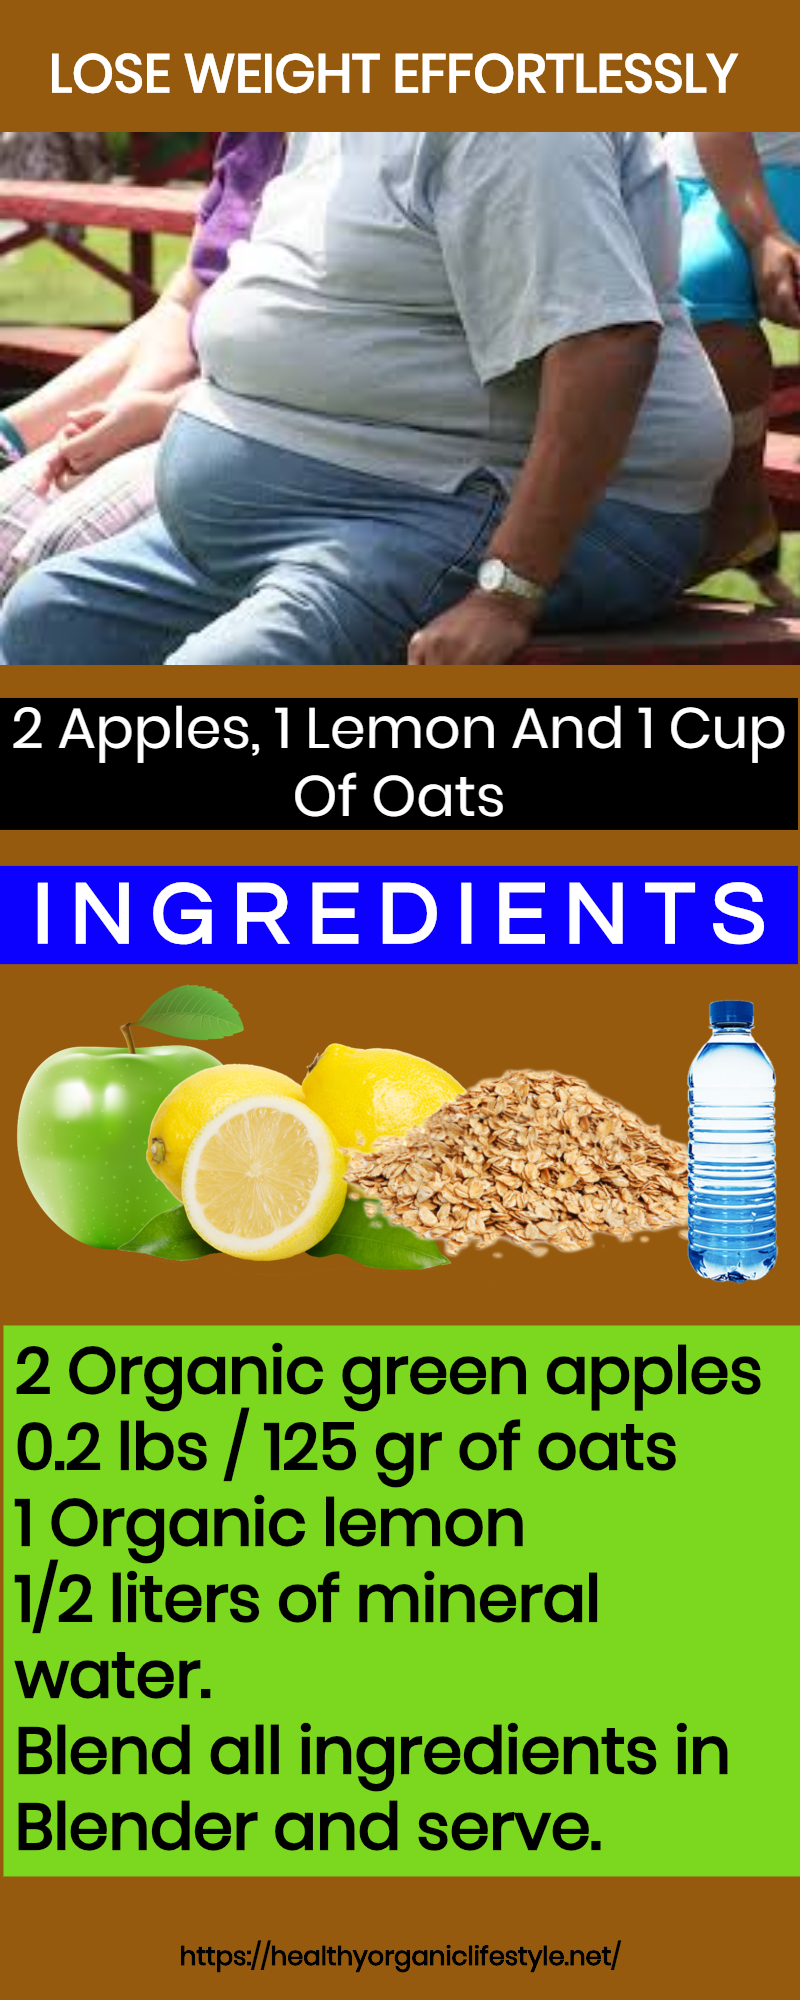 2 Apples, 1 Lemon And 1 Cup Of Oats